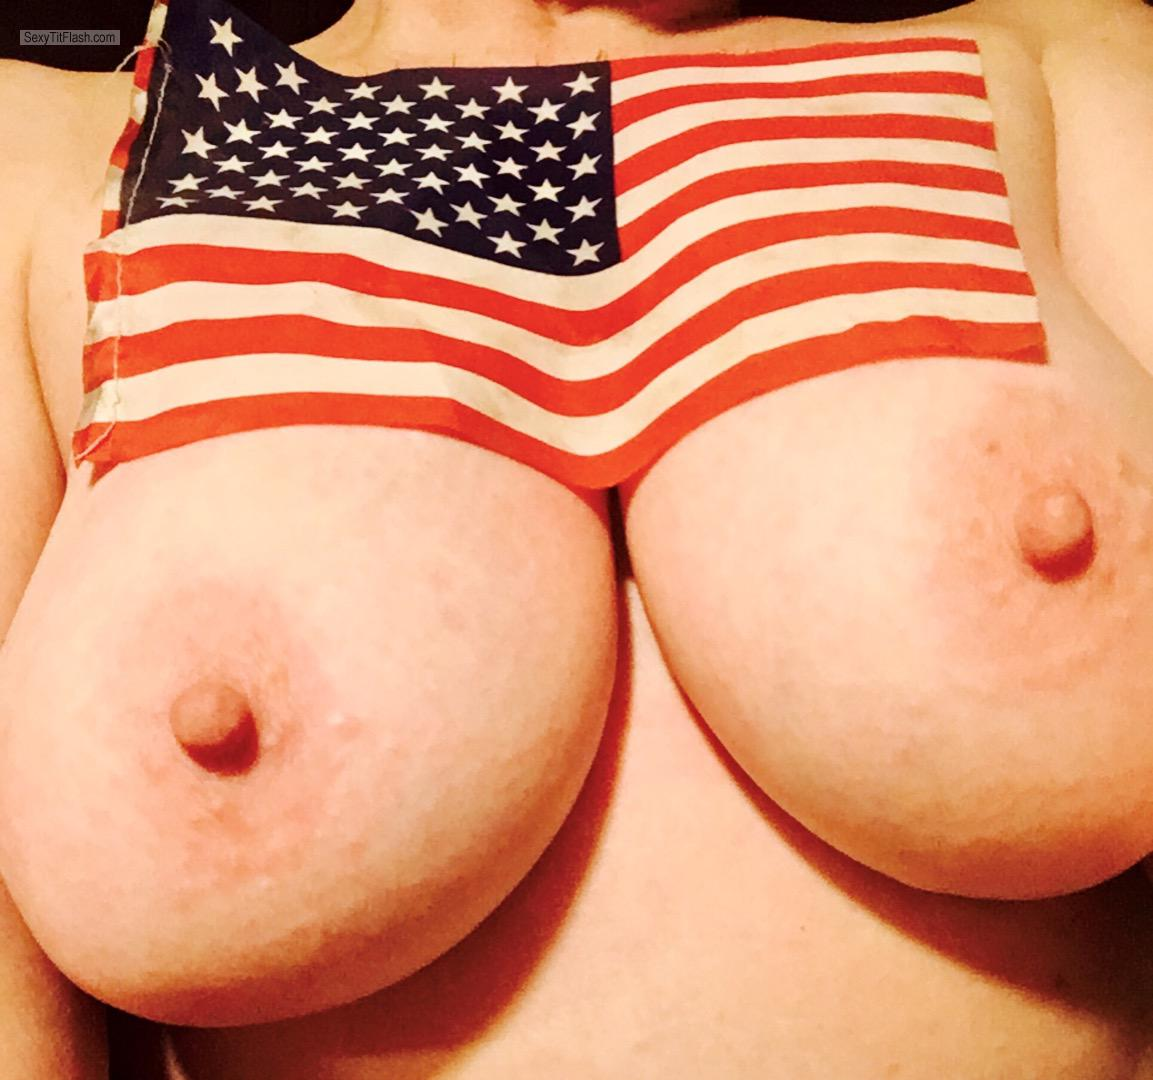 Tit Flash: My Big Tits (Selfie) - America from United States